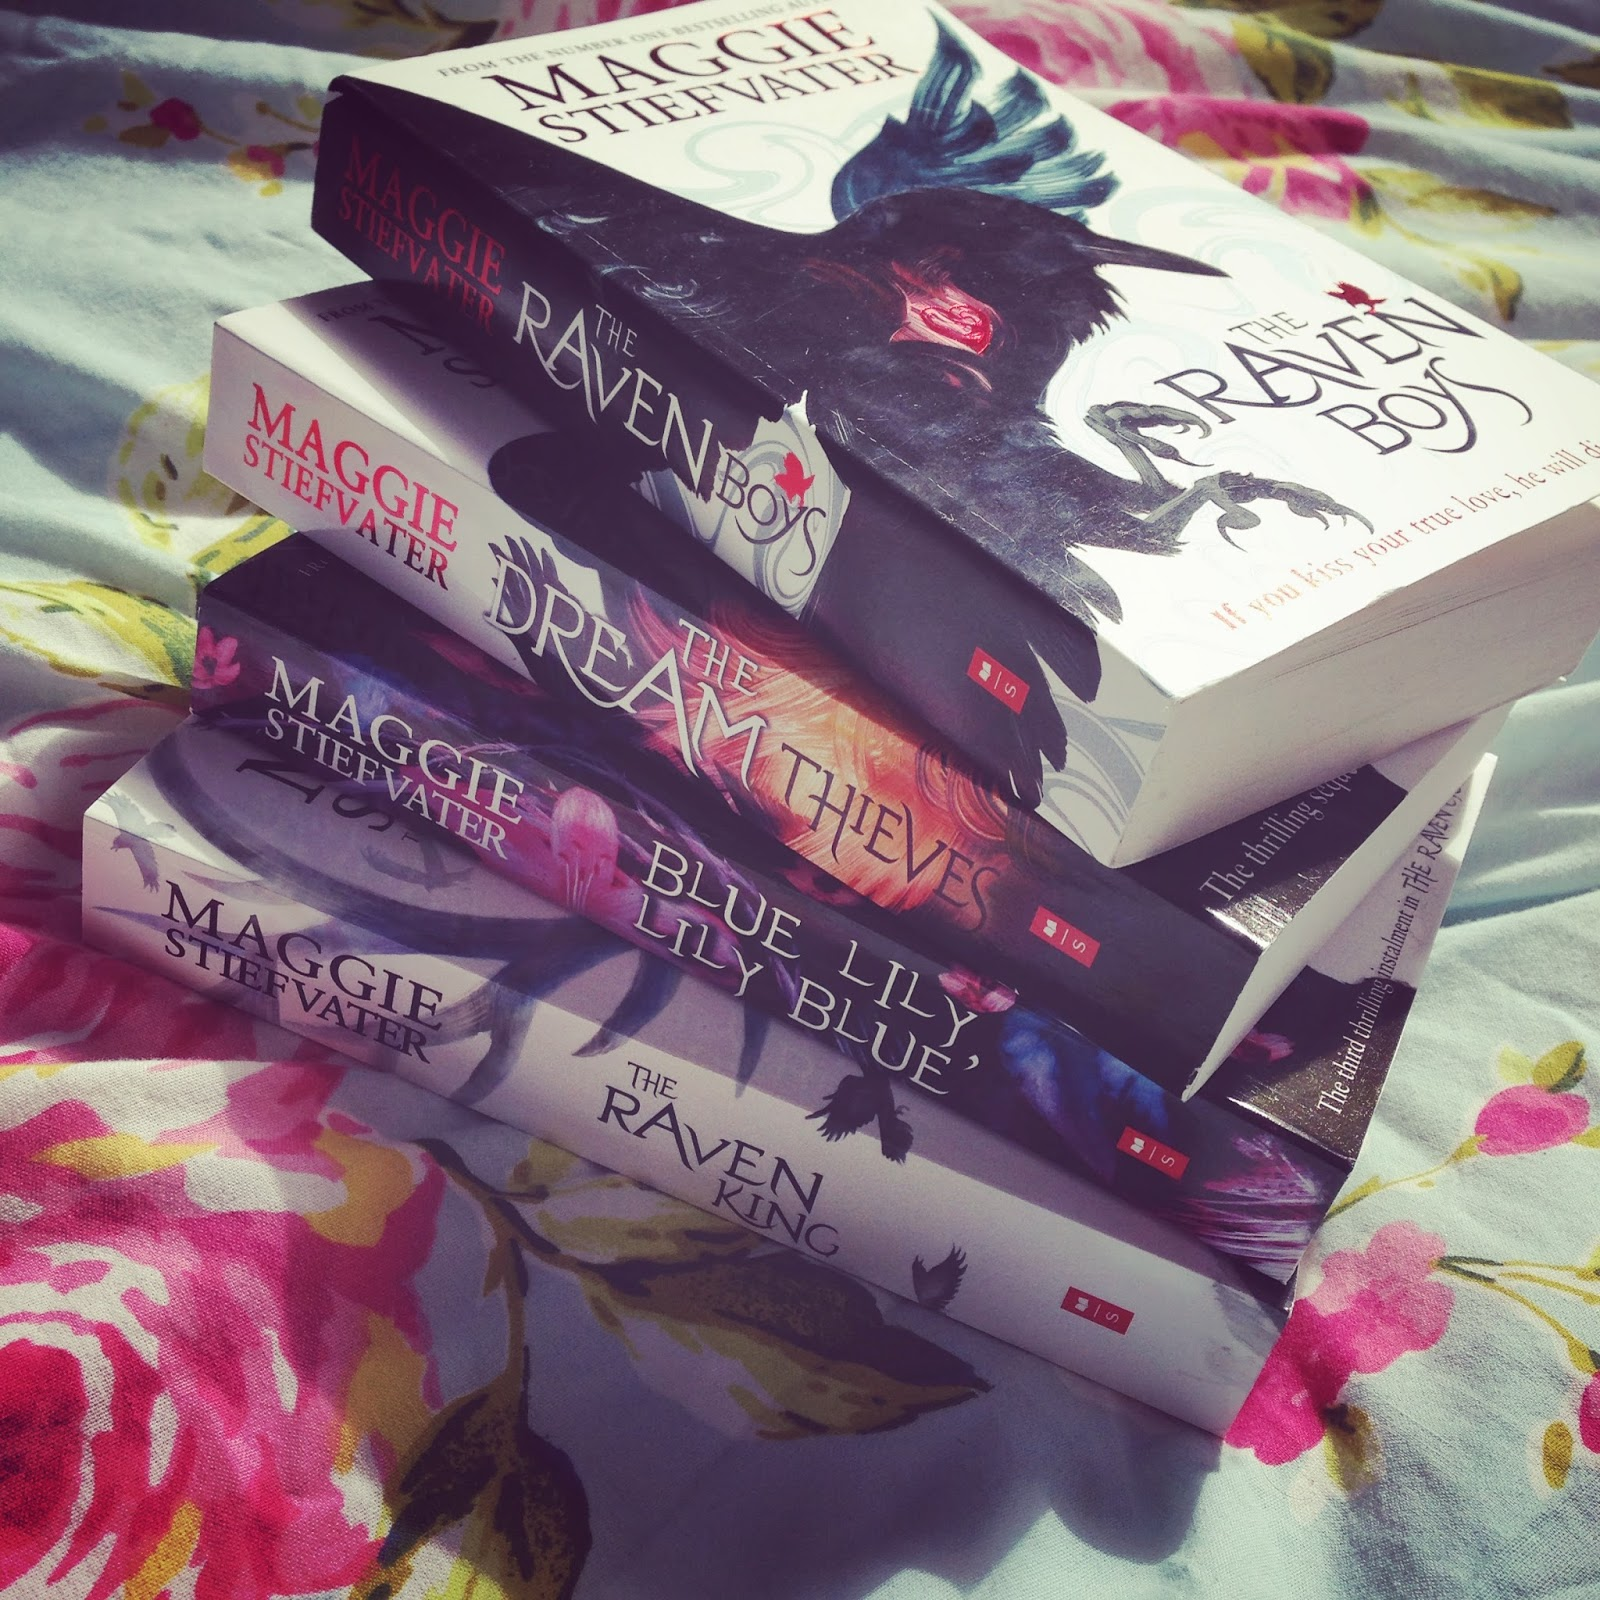 throne of glass collectors edition book depository